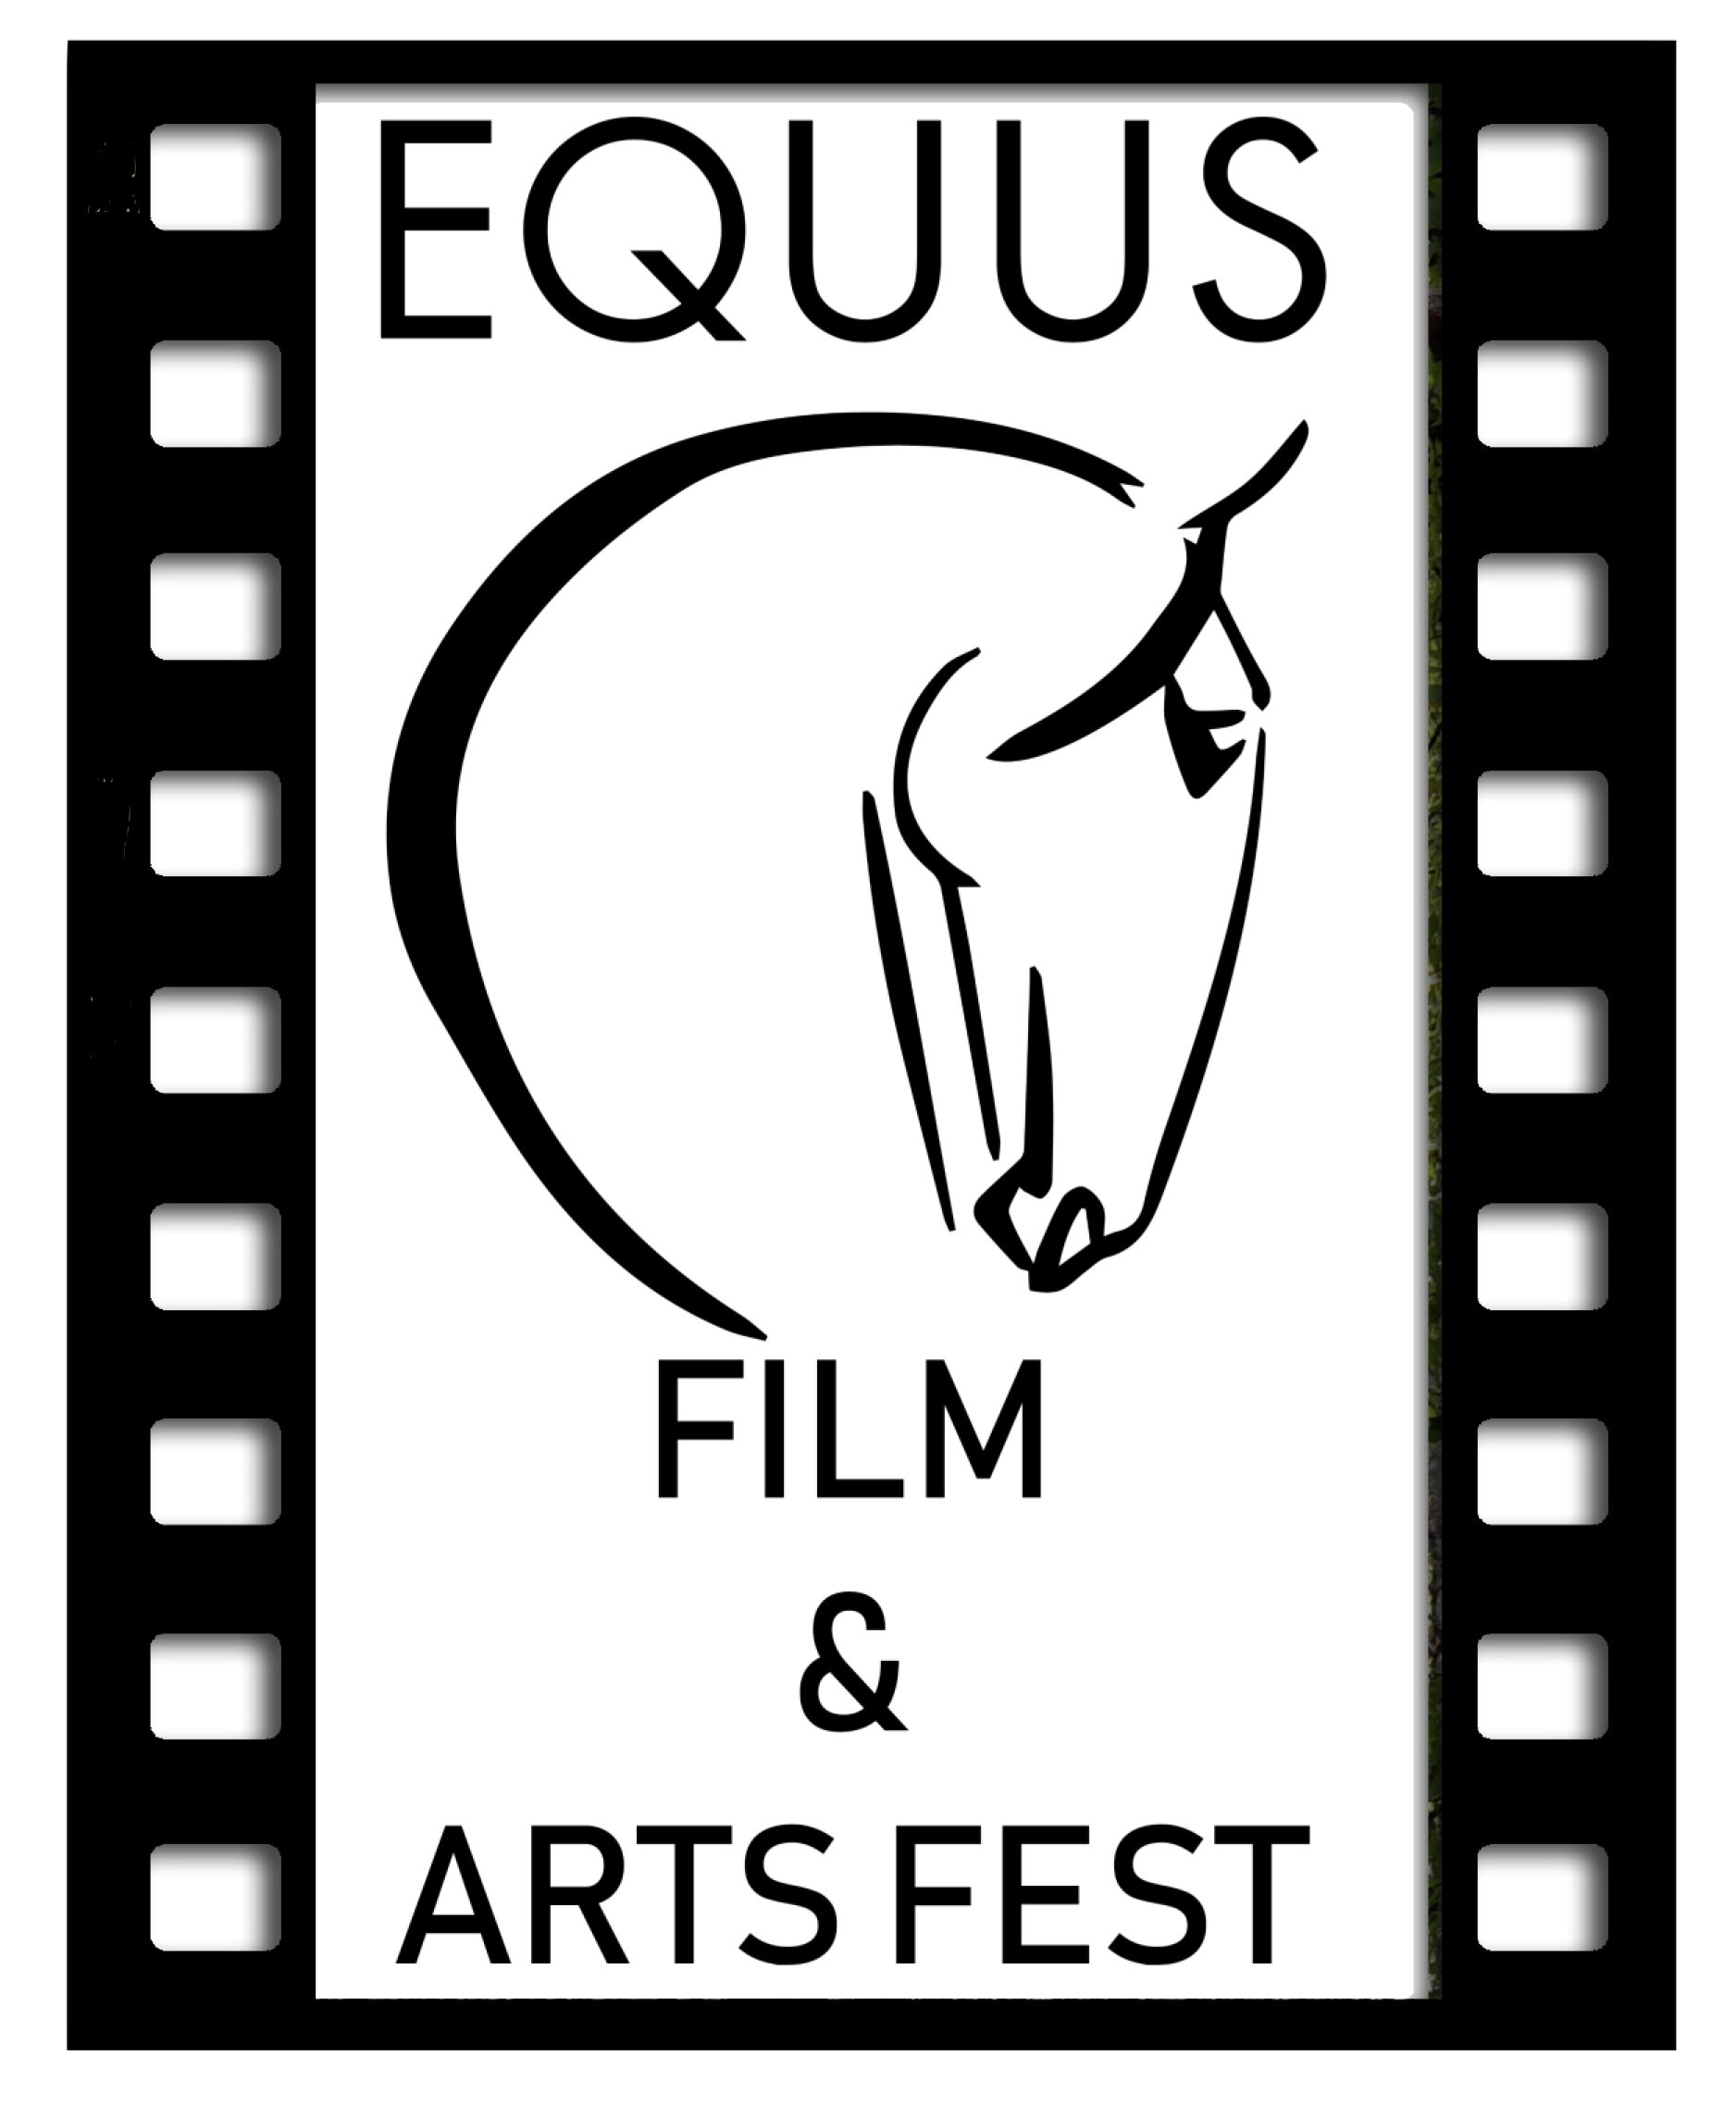 EQUUS Film & Arts Fest Virtual Event